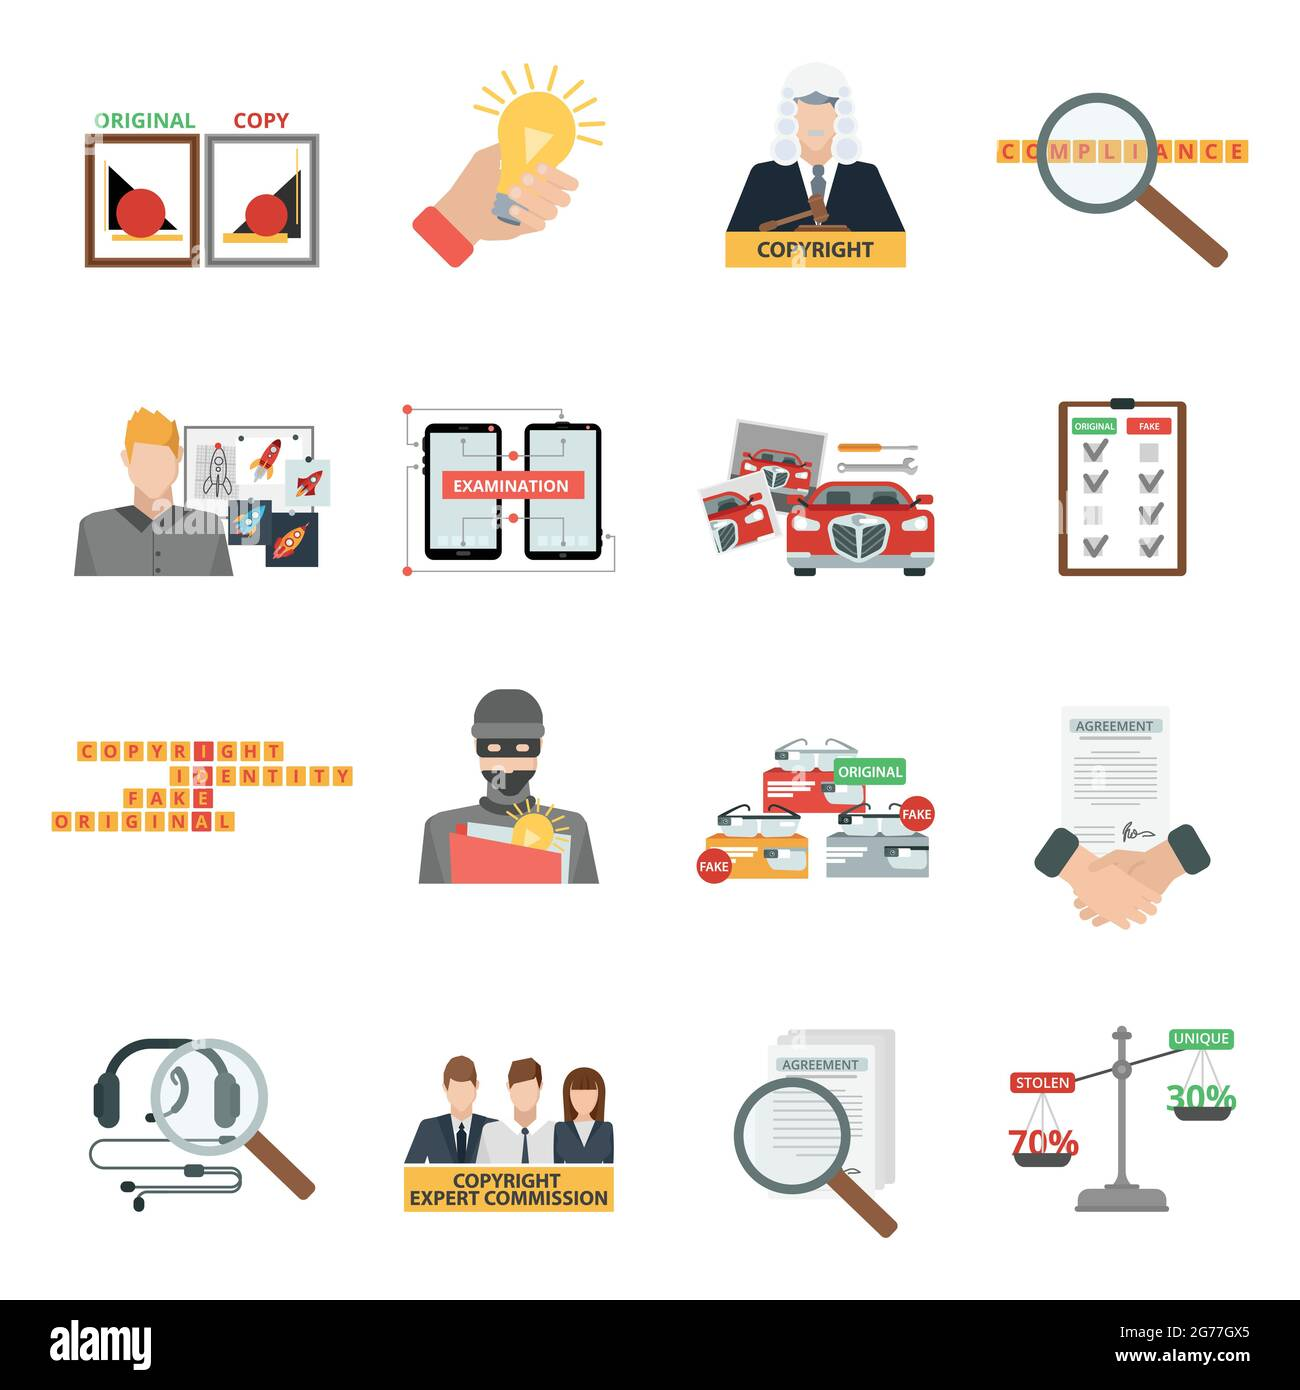 Criminal copyright law compliance and intellectual property piracy theft penalties flat icons collection abstract isolated vector illustration Stock Vector